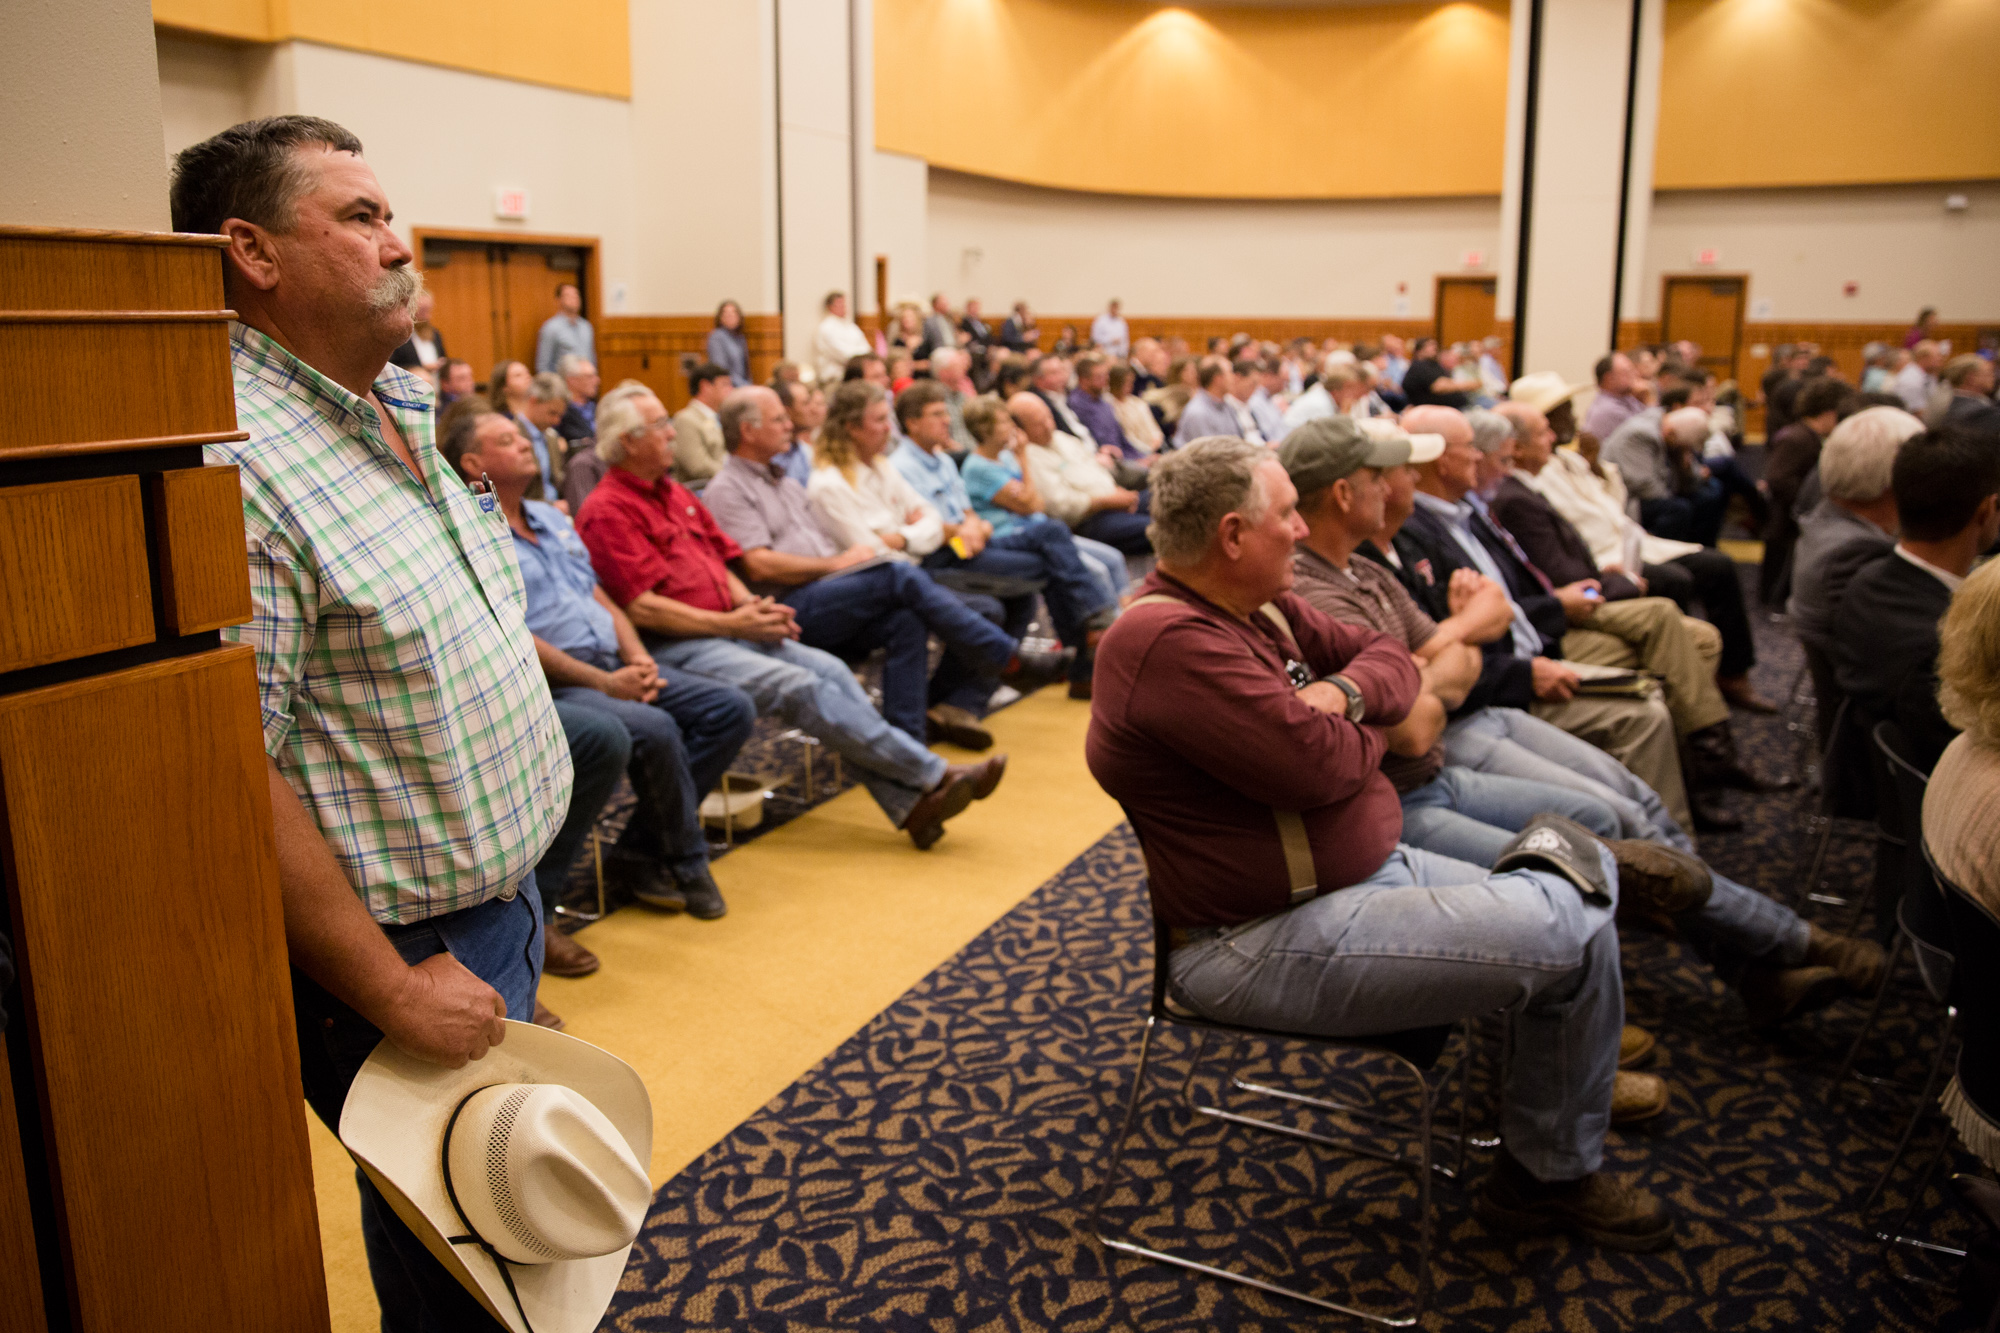 Texan farmers fill the university center at Angelo State University to speak with U.S. Rep. Mike Conaway and other members of the House Committee on Agriculture about the 2018 Farm Bill on July 31, 2017.